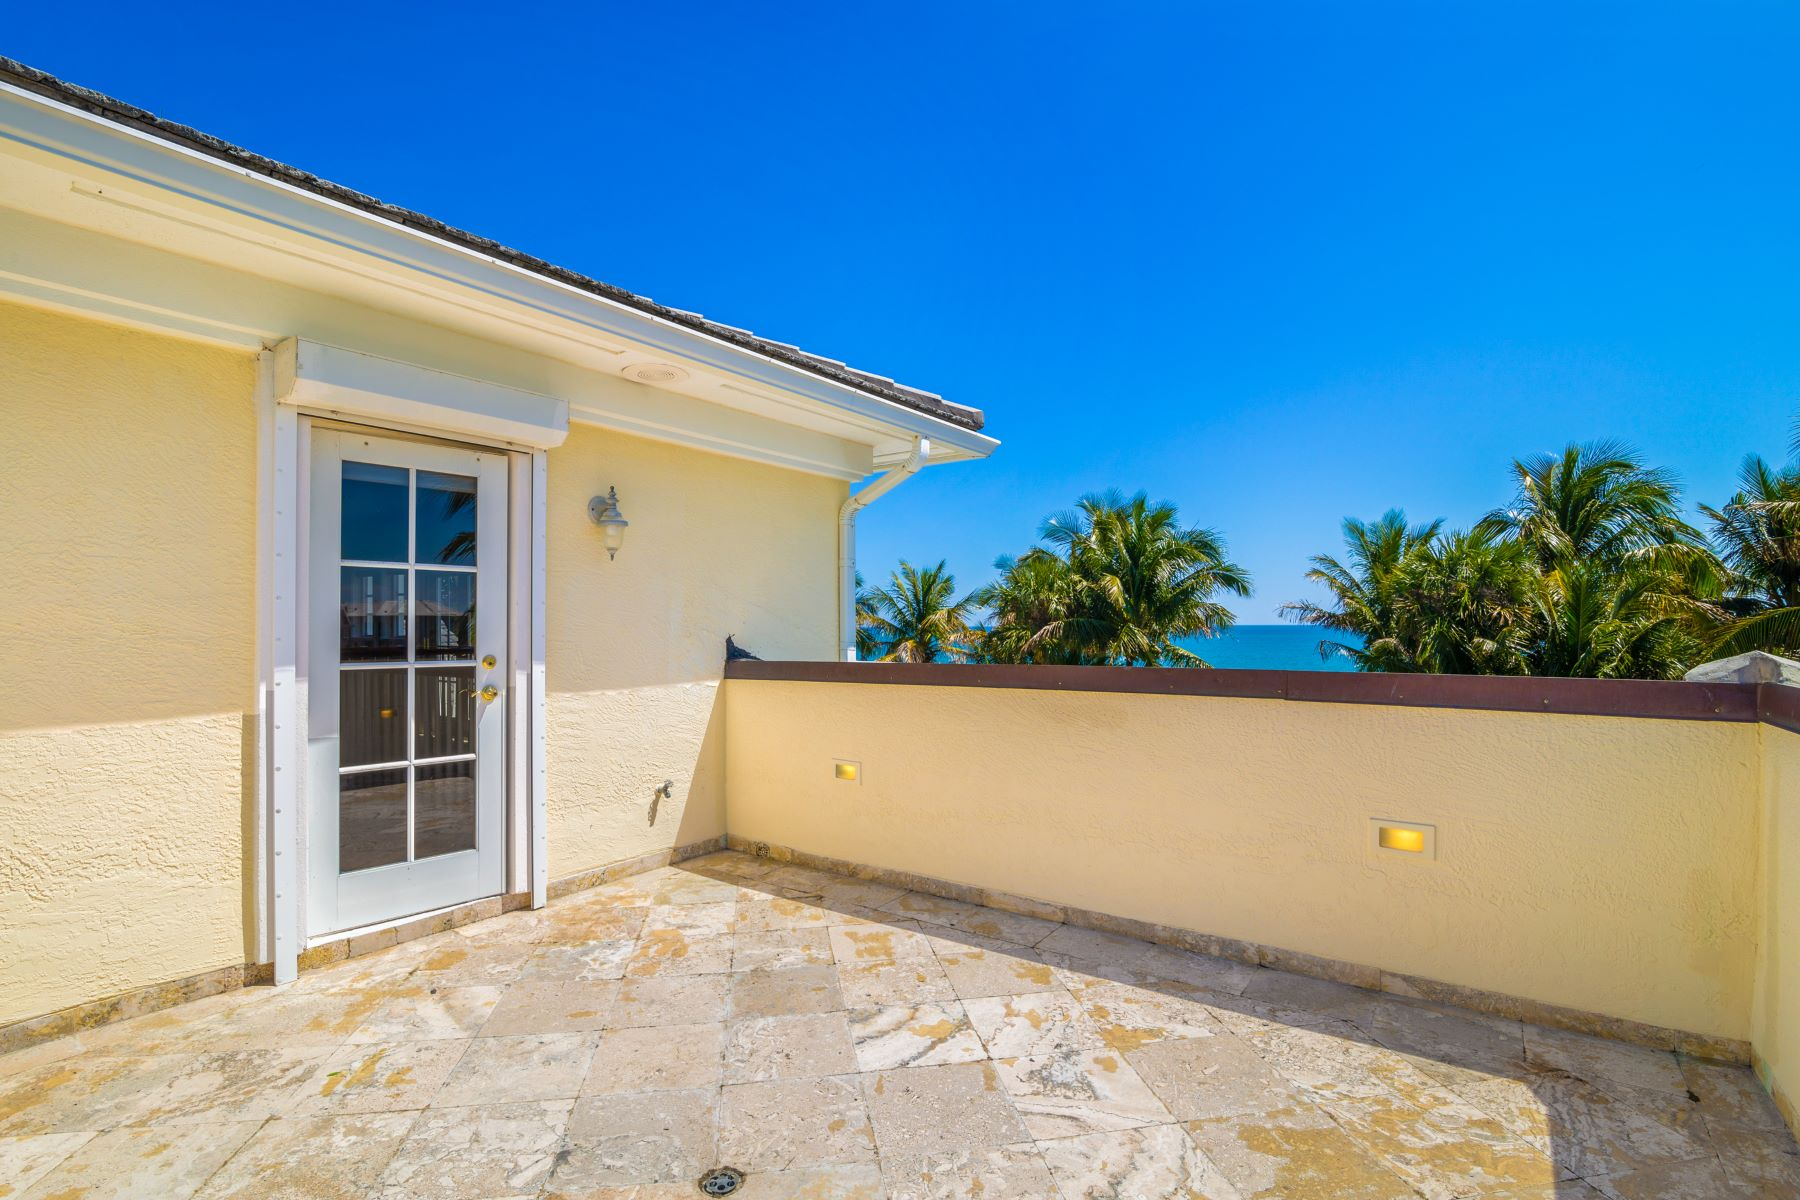 Additional photo for property listing at 960 Reef Road Vero Beach, Florida 32963 United States